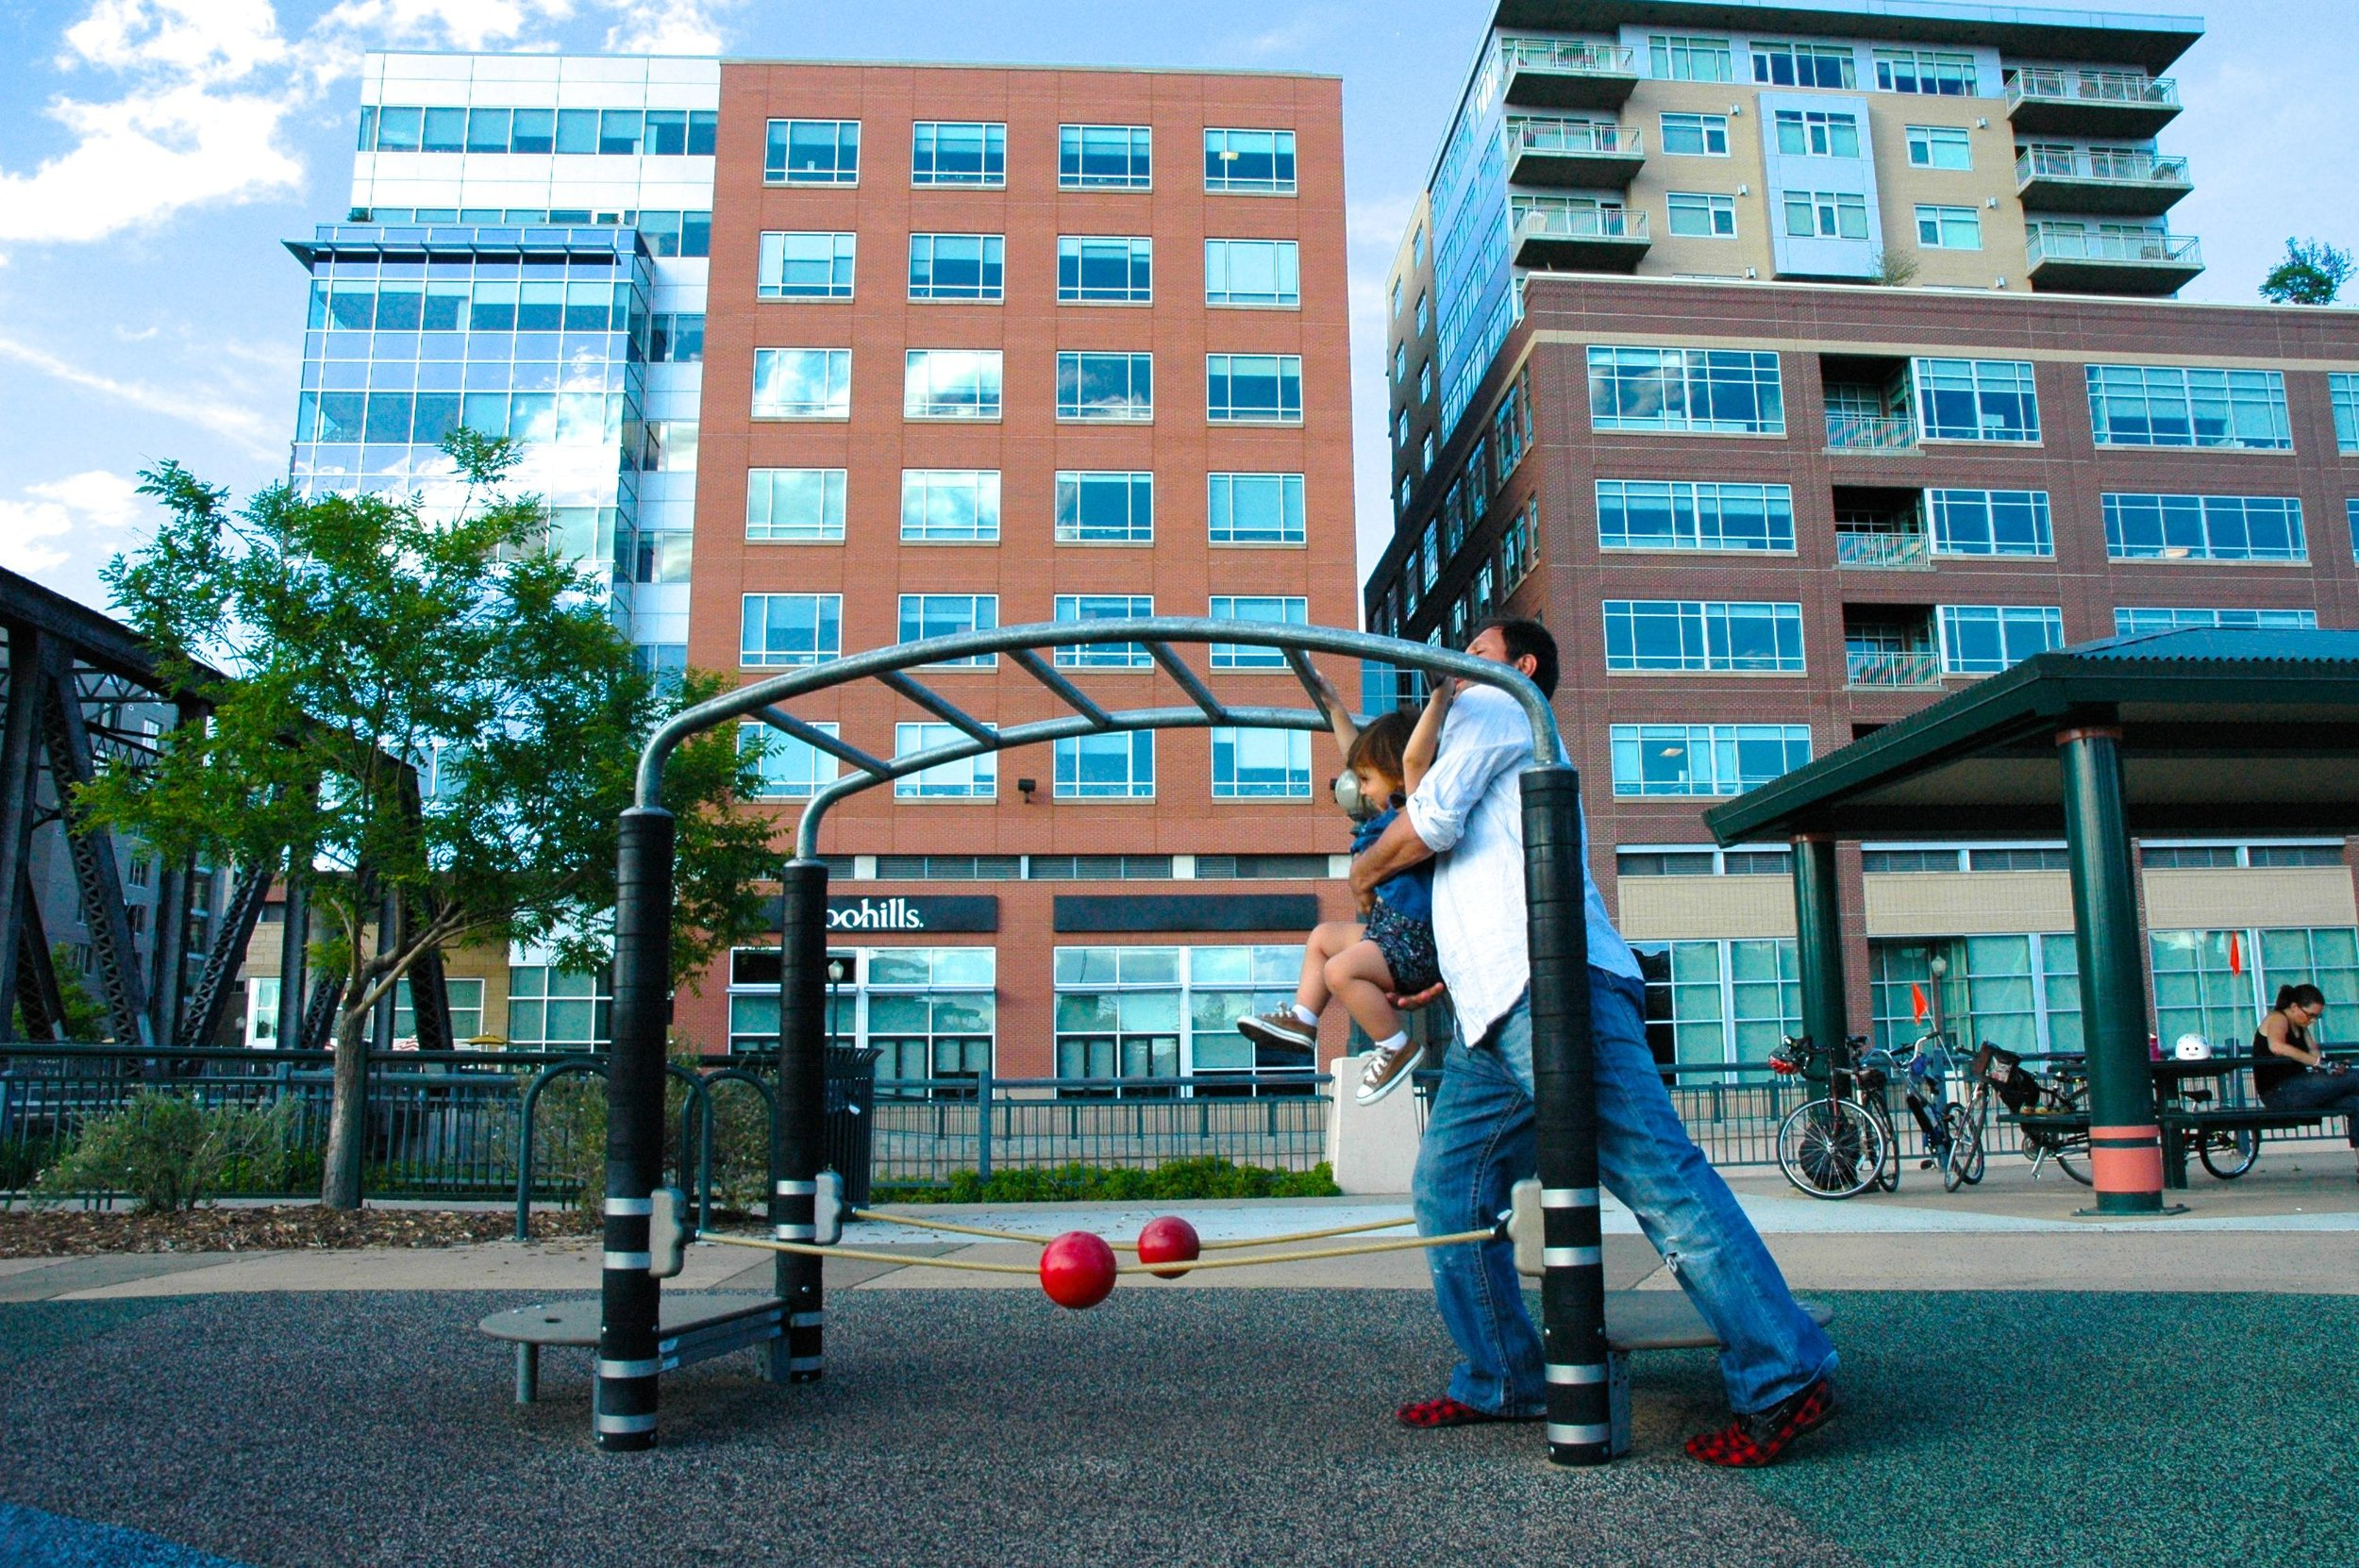 w-park-baba-and-remy-monkey-bars1.jpg